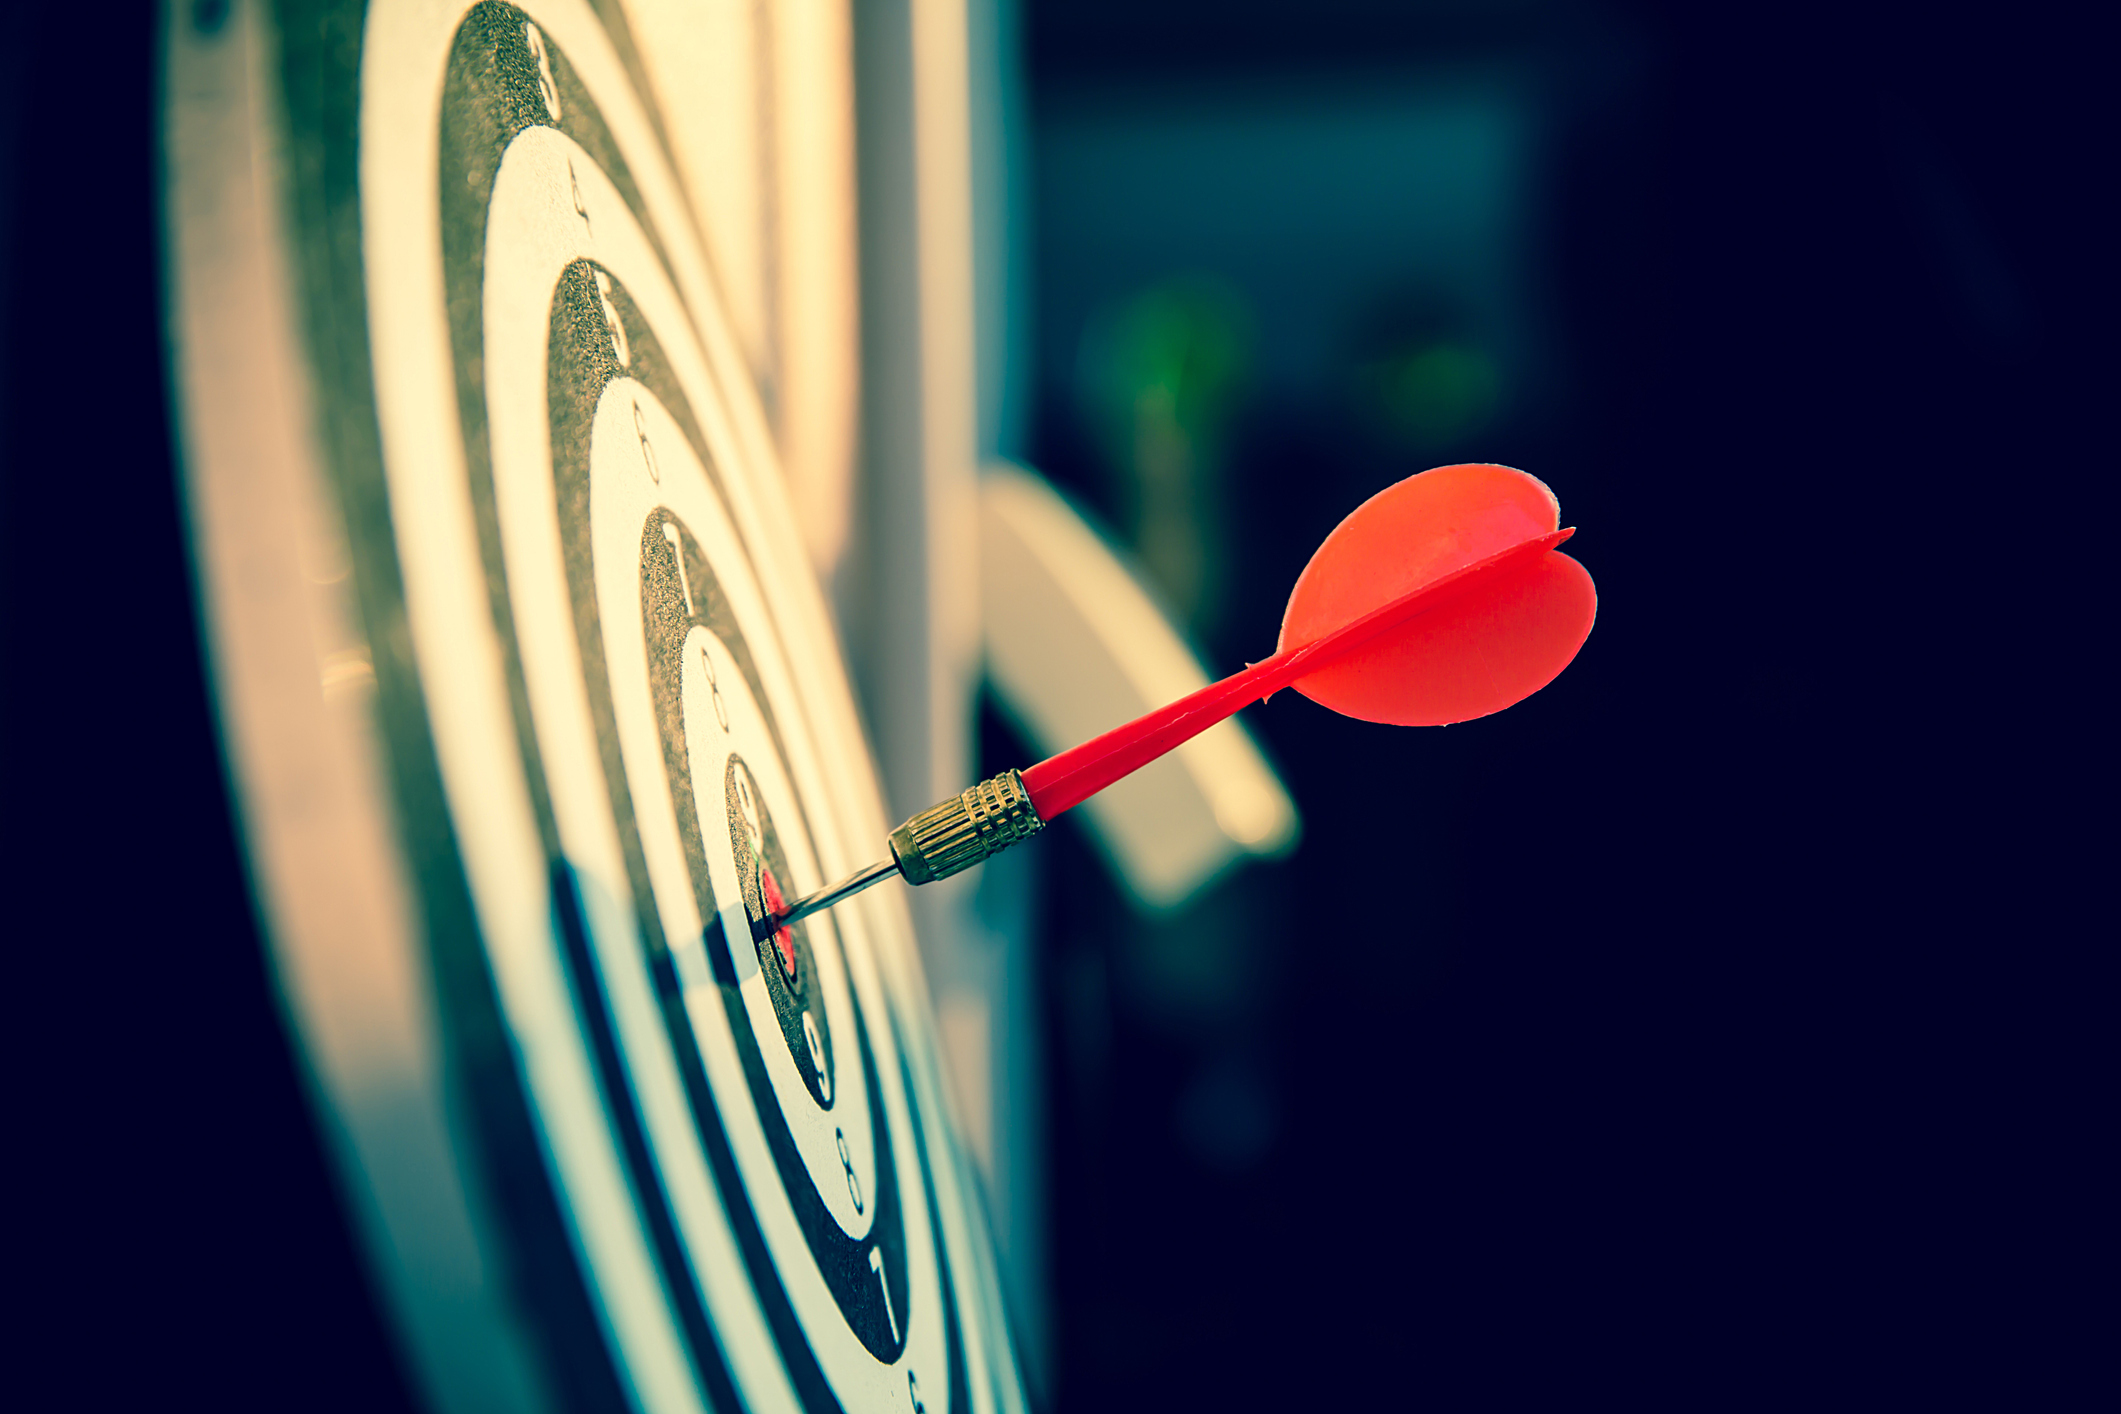 lose up a red color arrow in the center of Bullseye or bull's-eye for business targeting and good success.